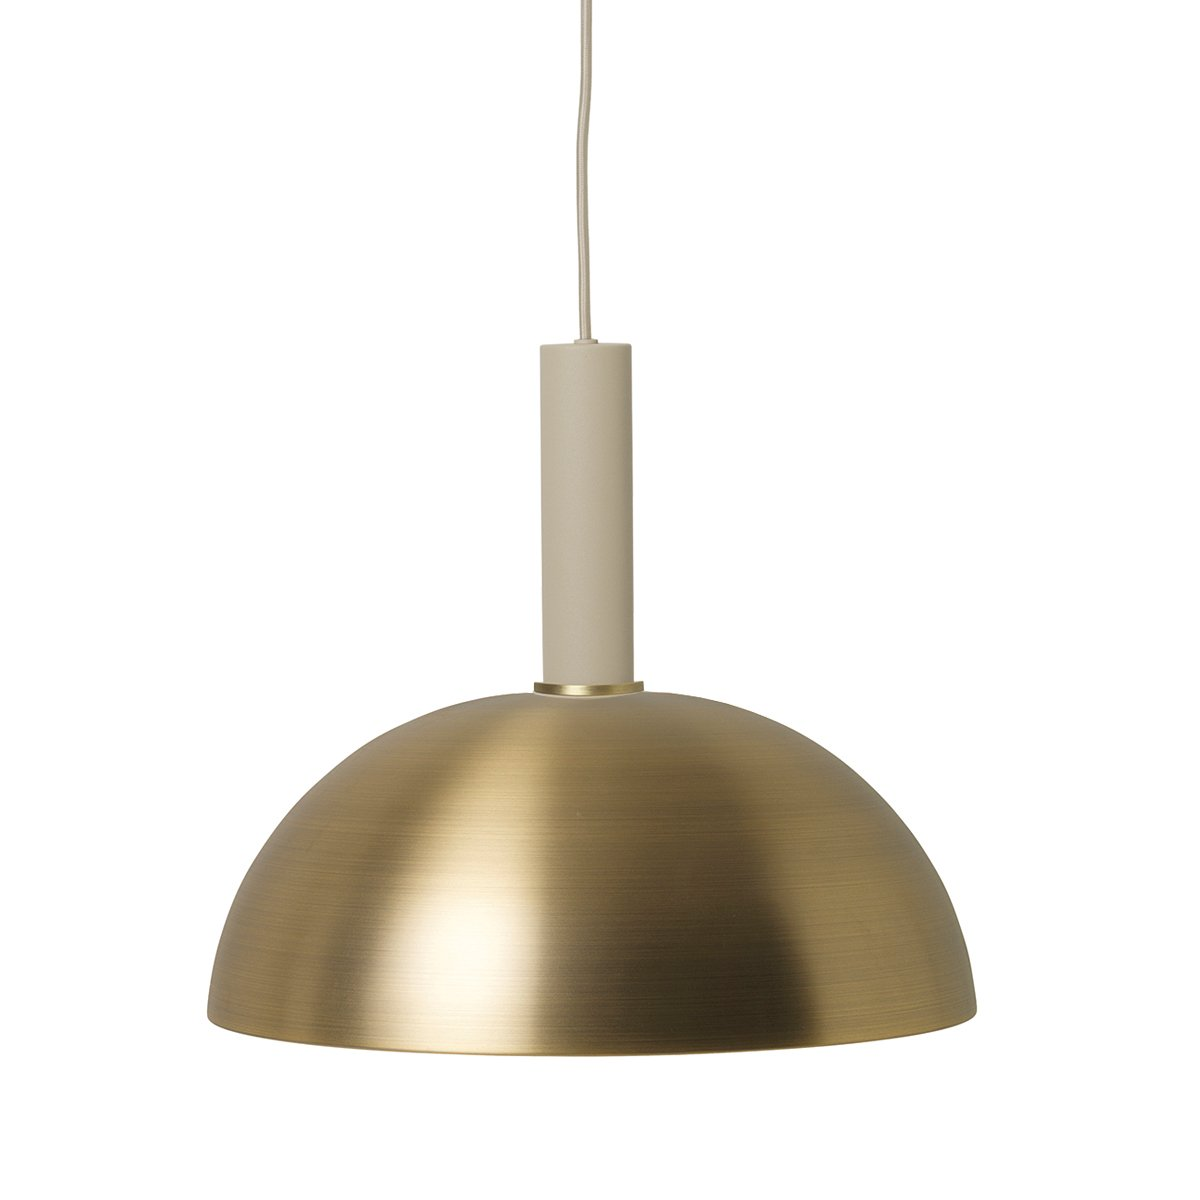 Ferm Living Collect Dome High Hanglamp Messing - Cashmere